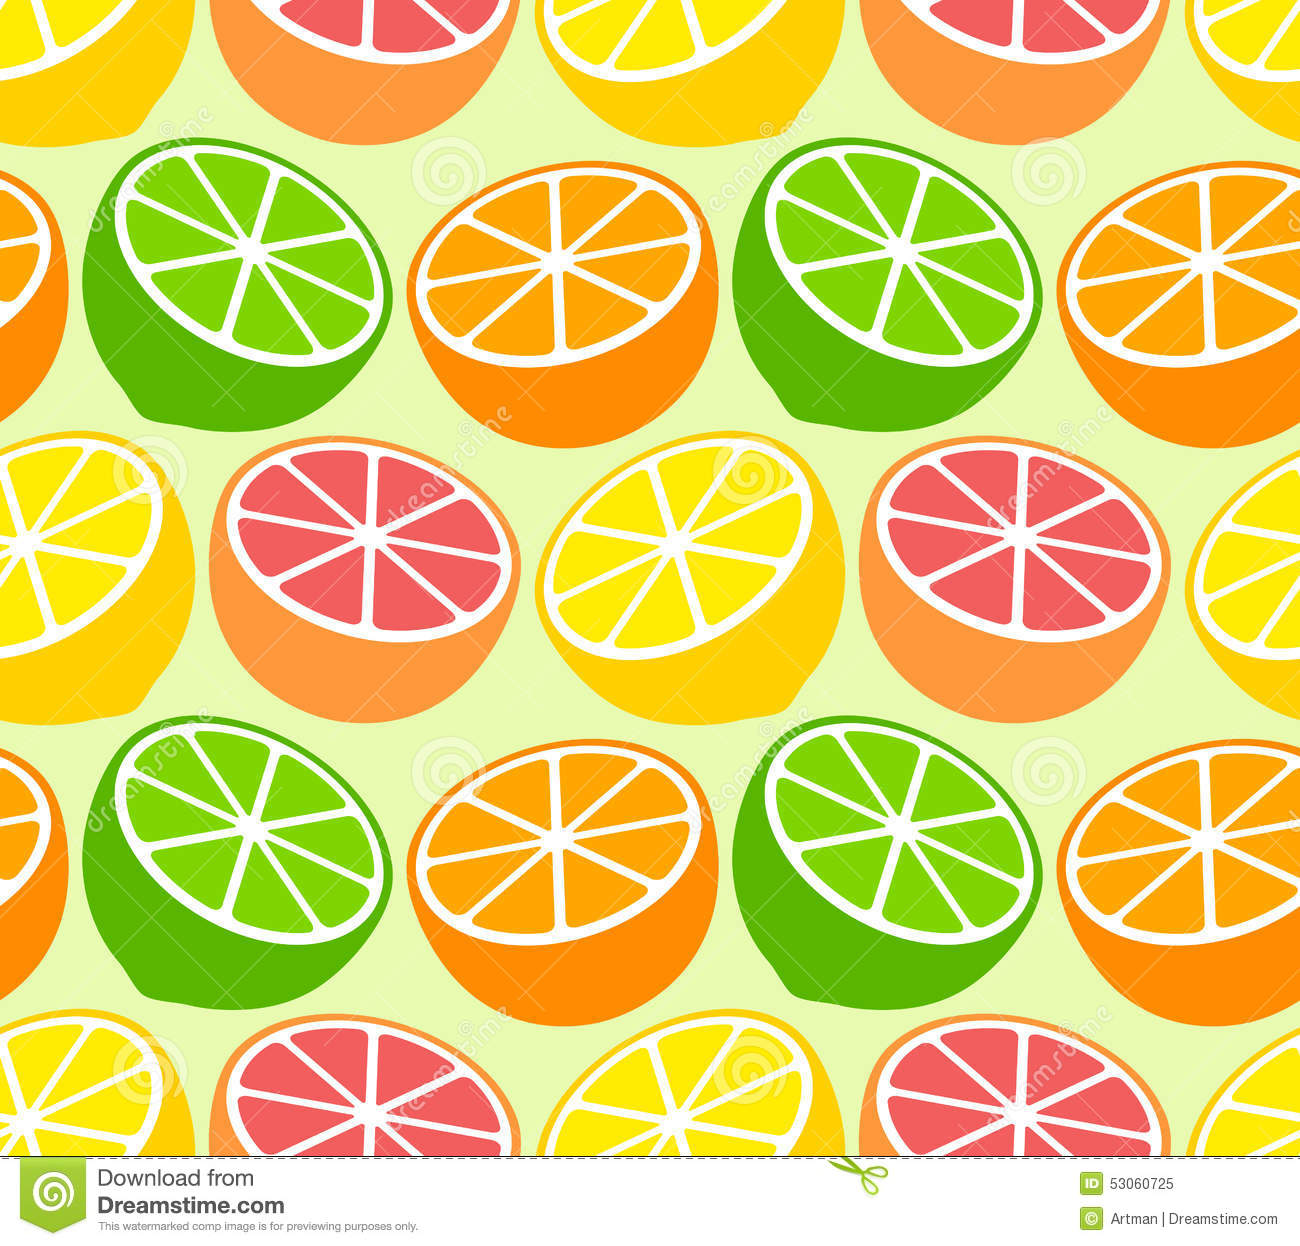 All the fruits wallpaper - Seamless Wallpaper Pattern With Citrus Fruits Royalty Free Stock Photo